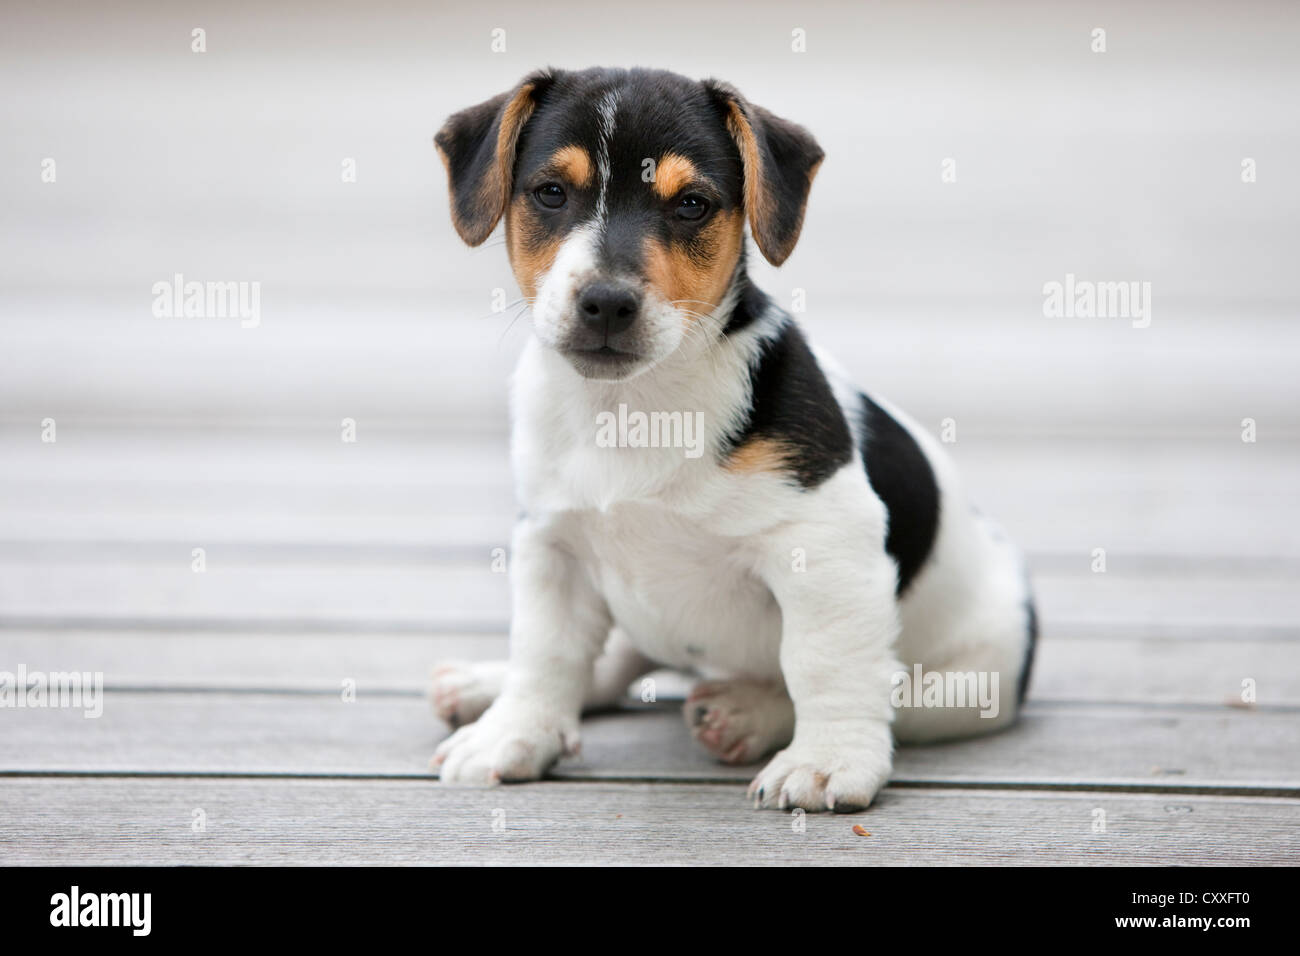 Jack Russell Terrier, puppy sitting on wooden floor, northern Tyrol, Austria, Europe, NON EXCLUSIVE USAGE: CALENDAR, - Stock Image